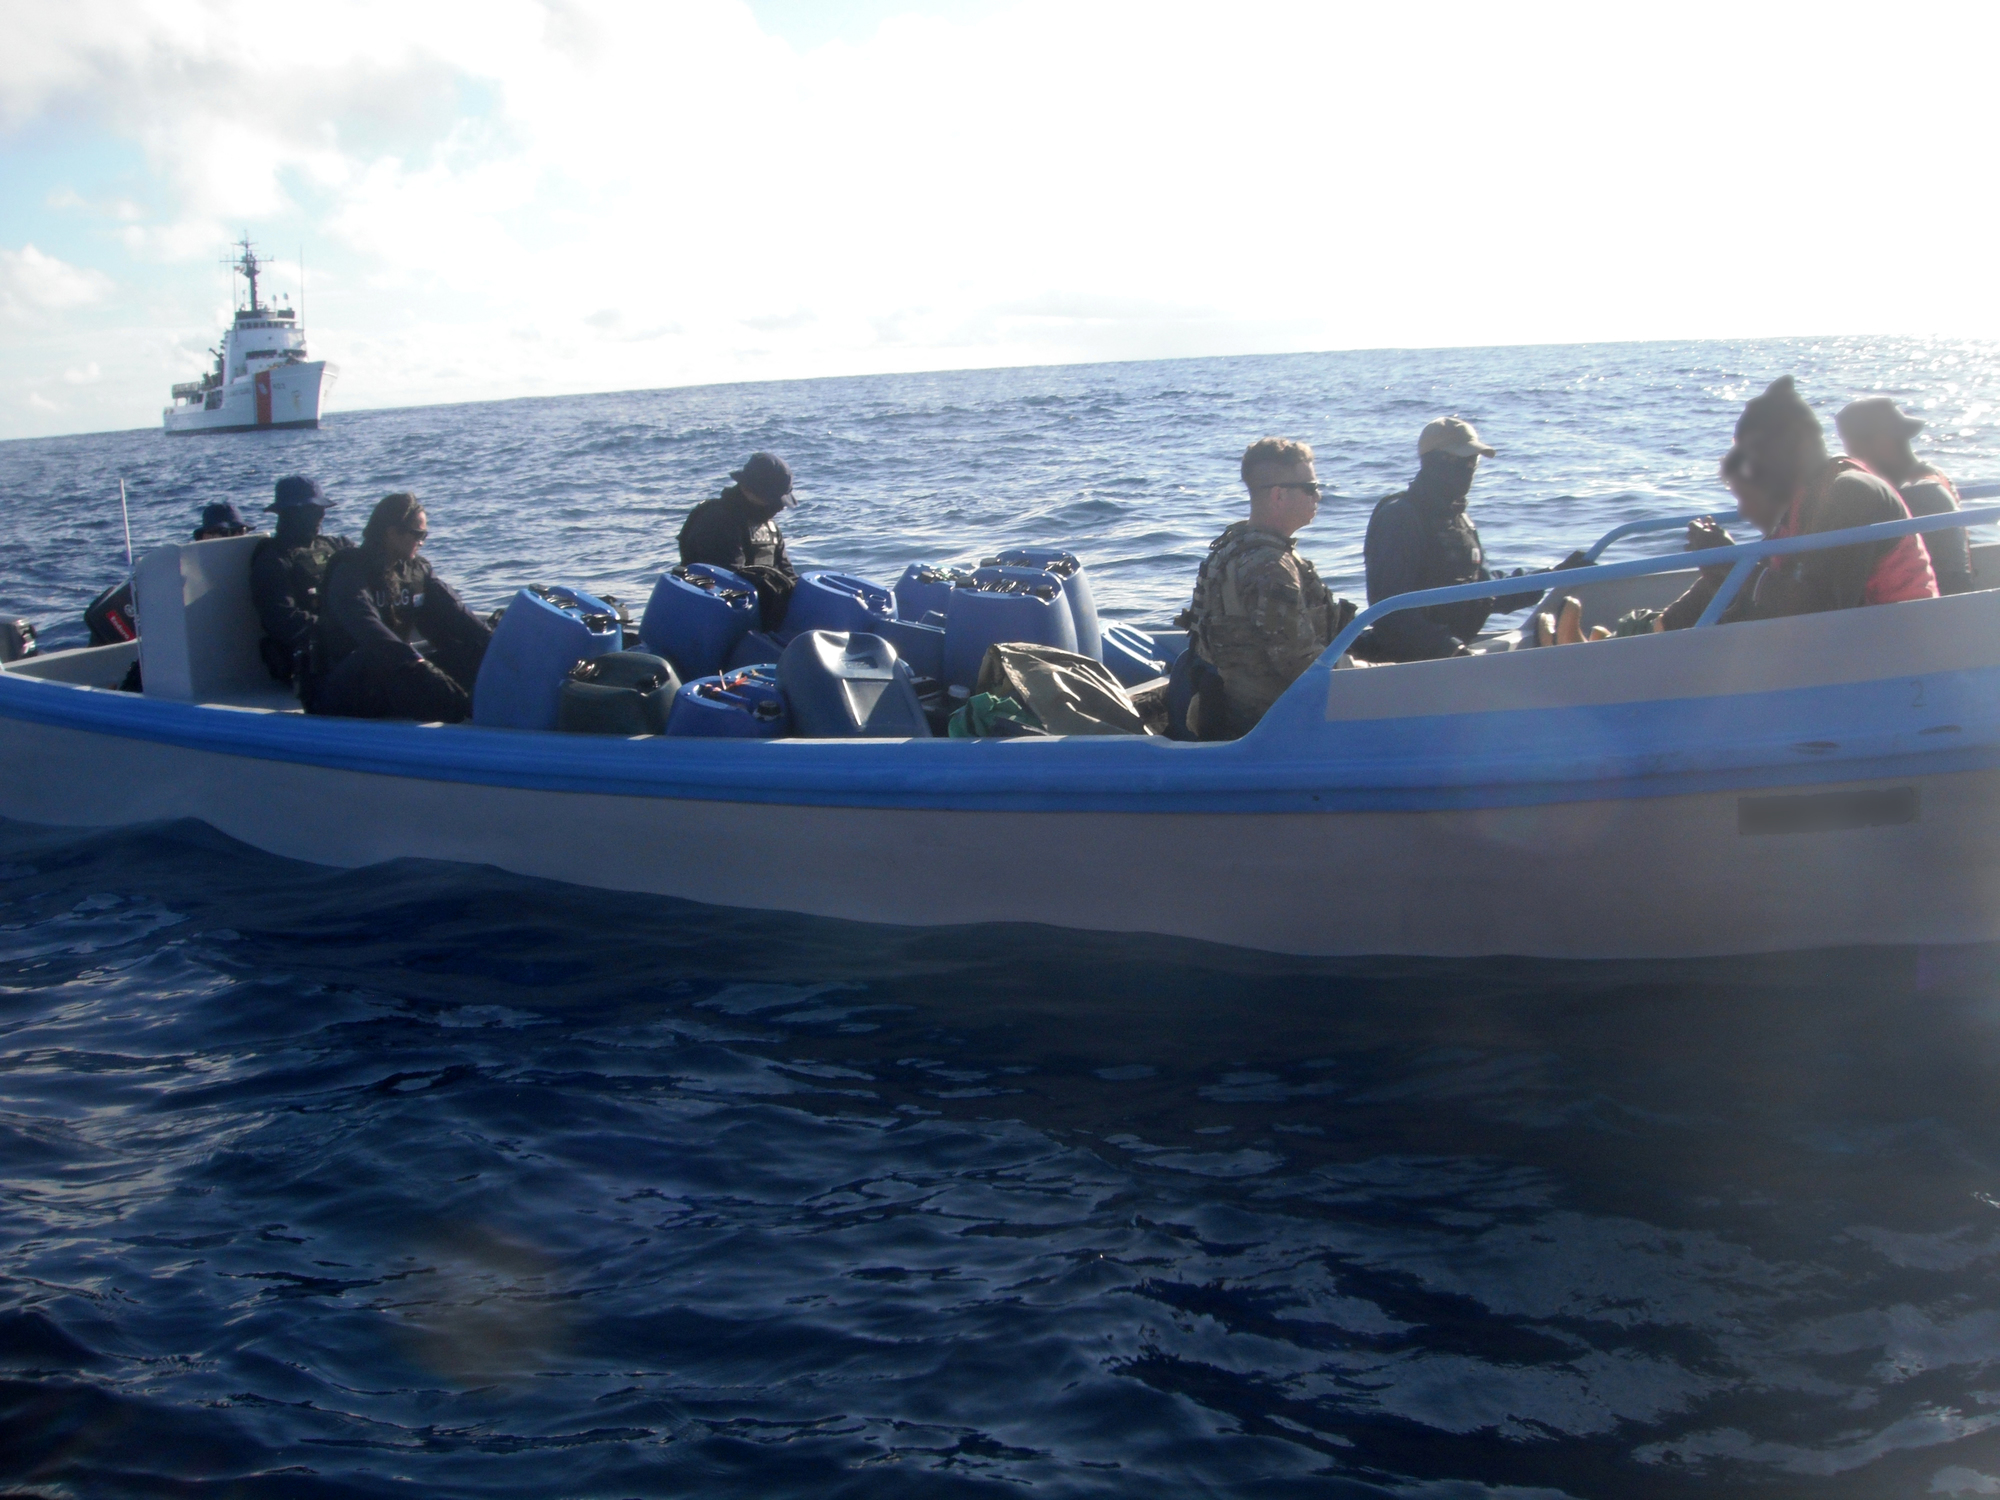 Coast Guard Cutter Steadfast crewmembers interdict suspected smuggling boat in the Eastern Pacific Ocean, seizing more than $21.5M worth of cocaine